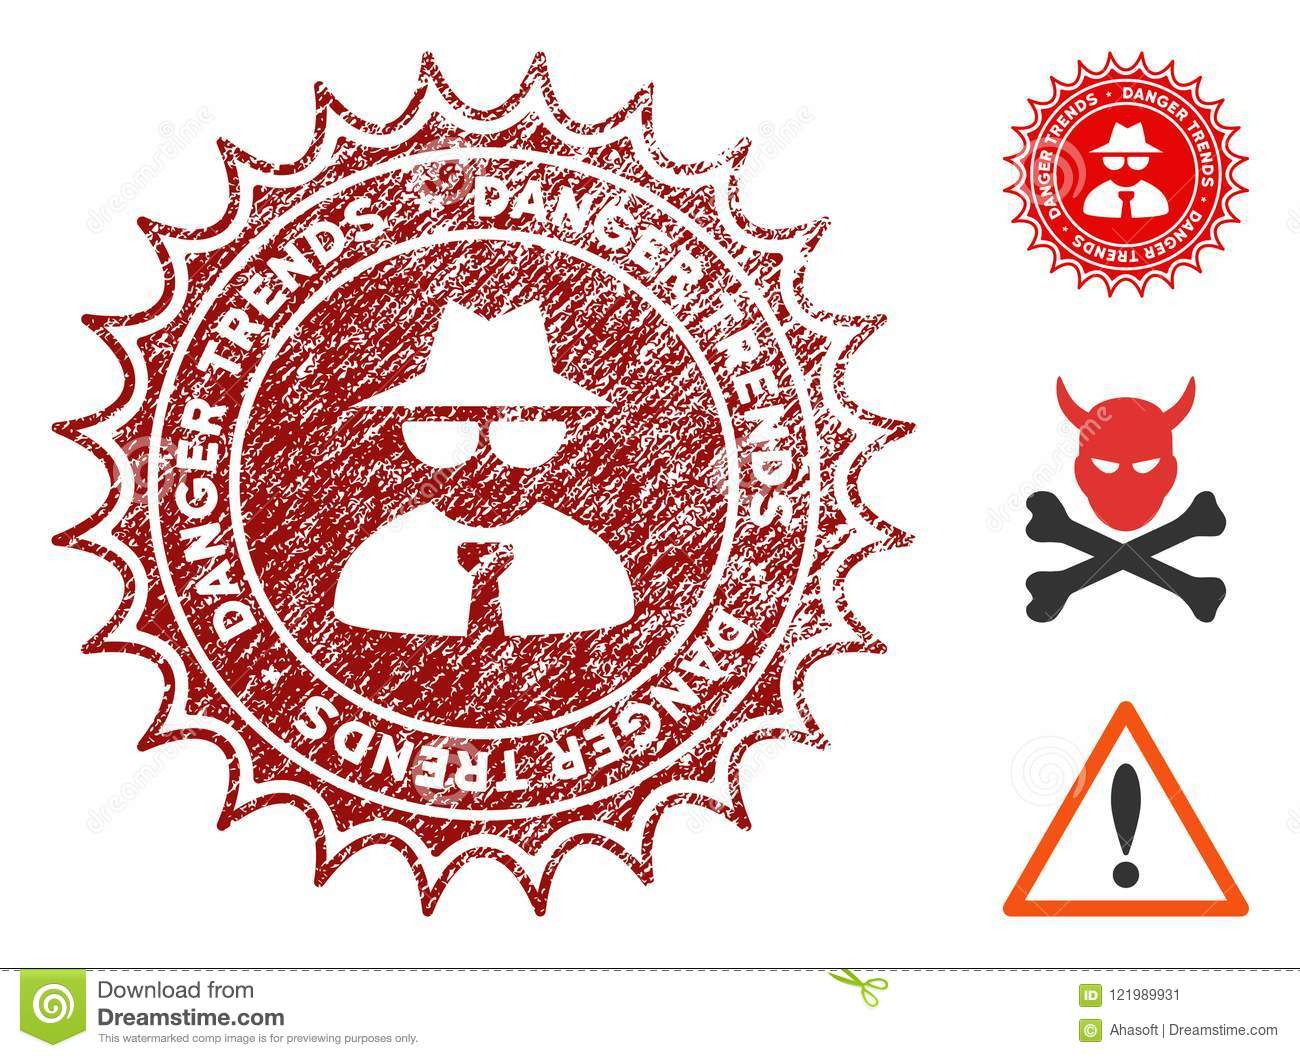 Mafia Danger Trends Watermark With Dirty Effect Stock Vector